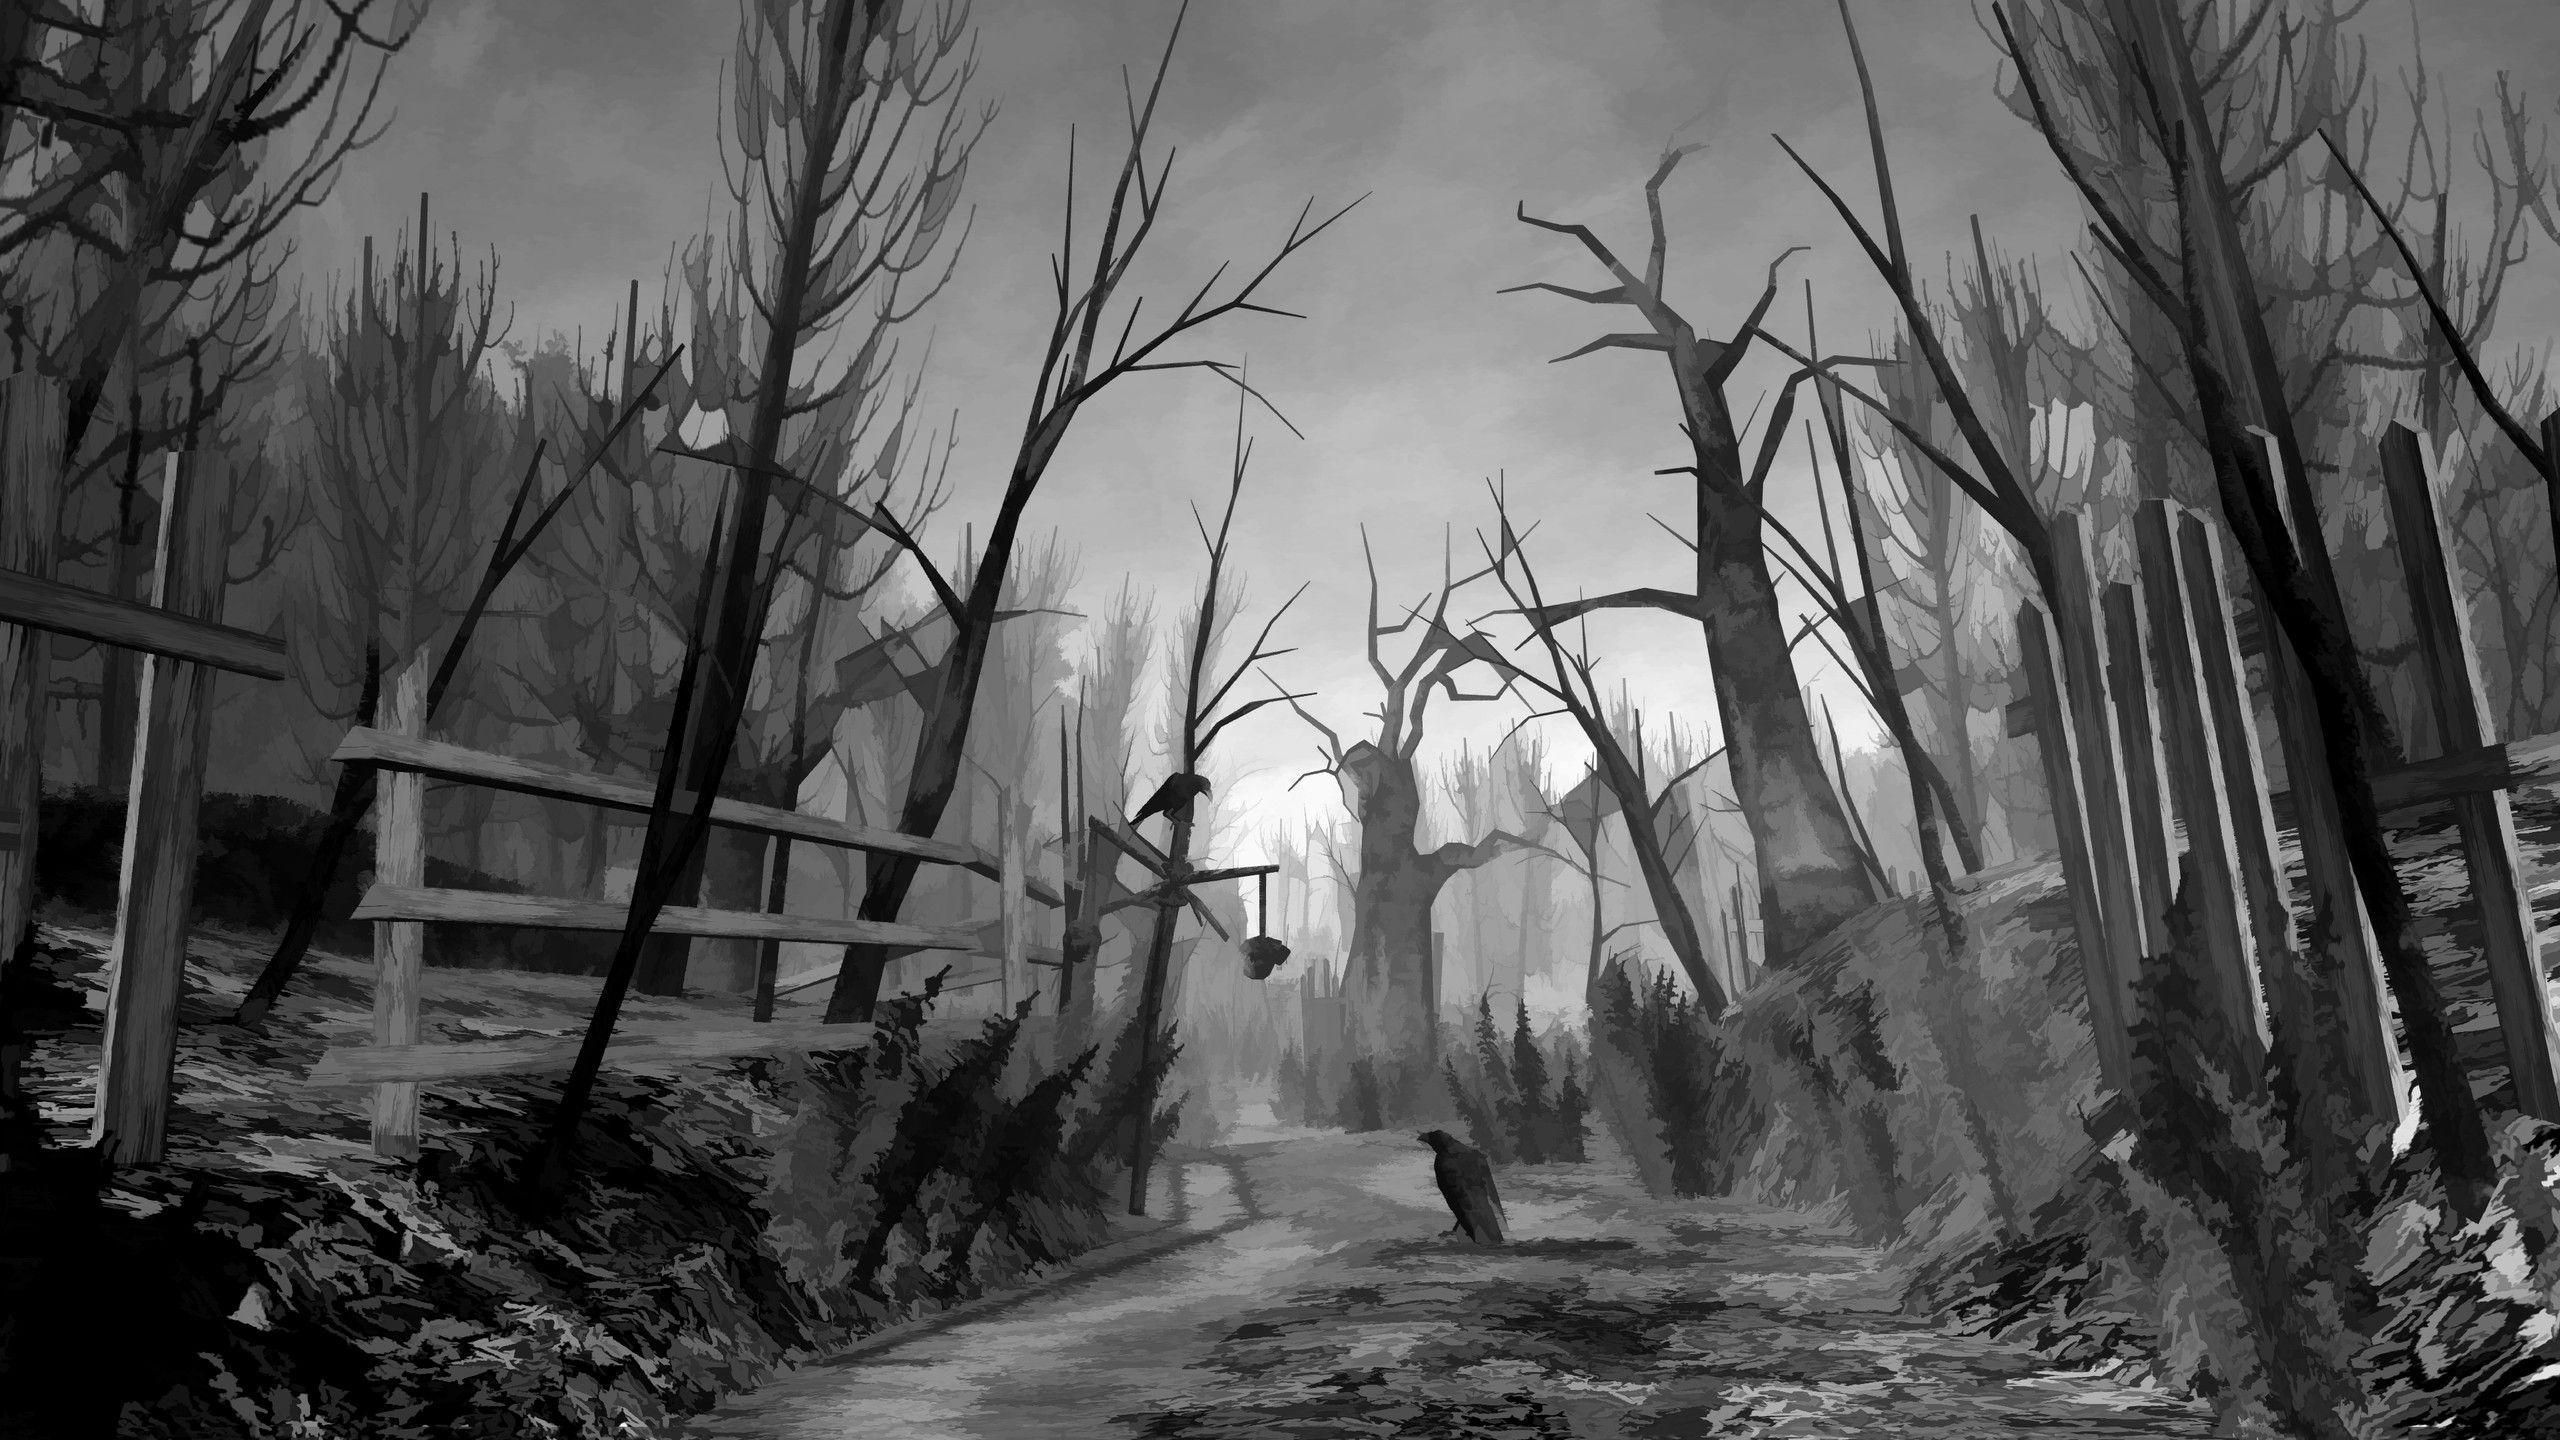 Scary Backgrounds Wallpaper 2560x1440 Creepy Forest 35 Wallpapers